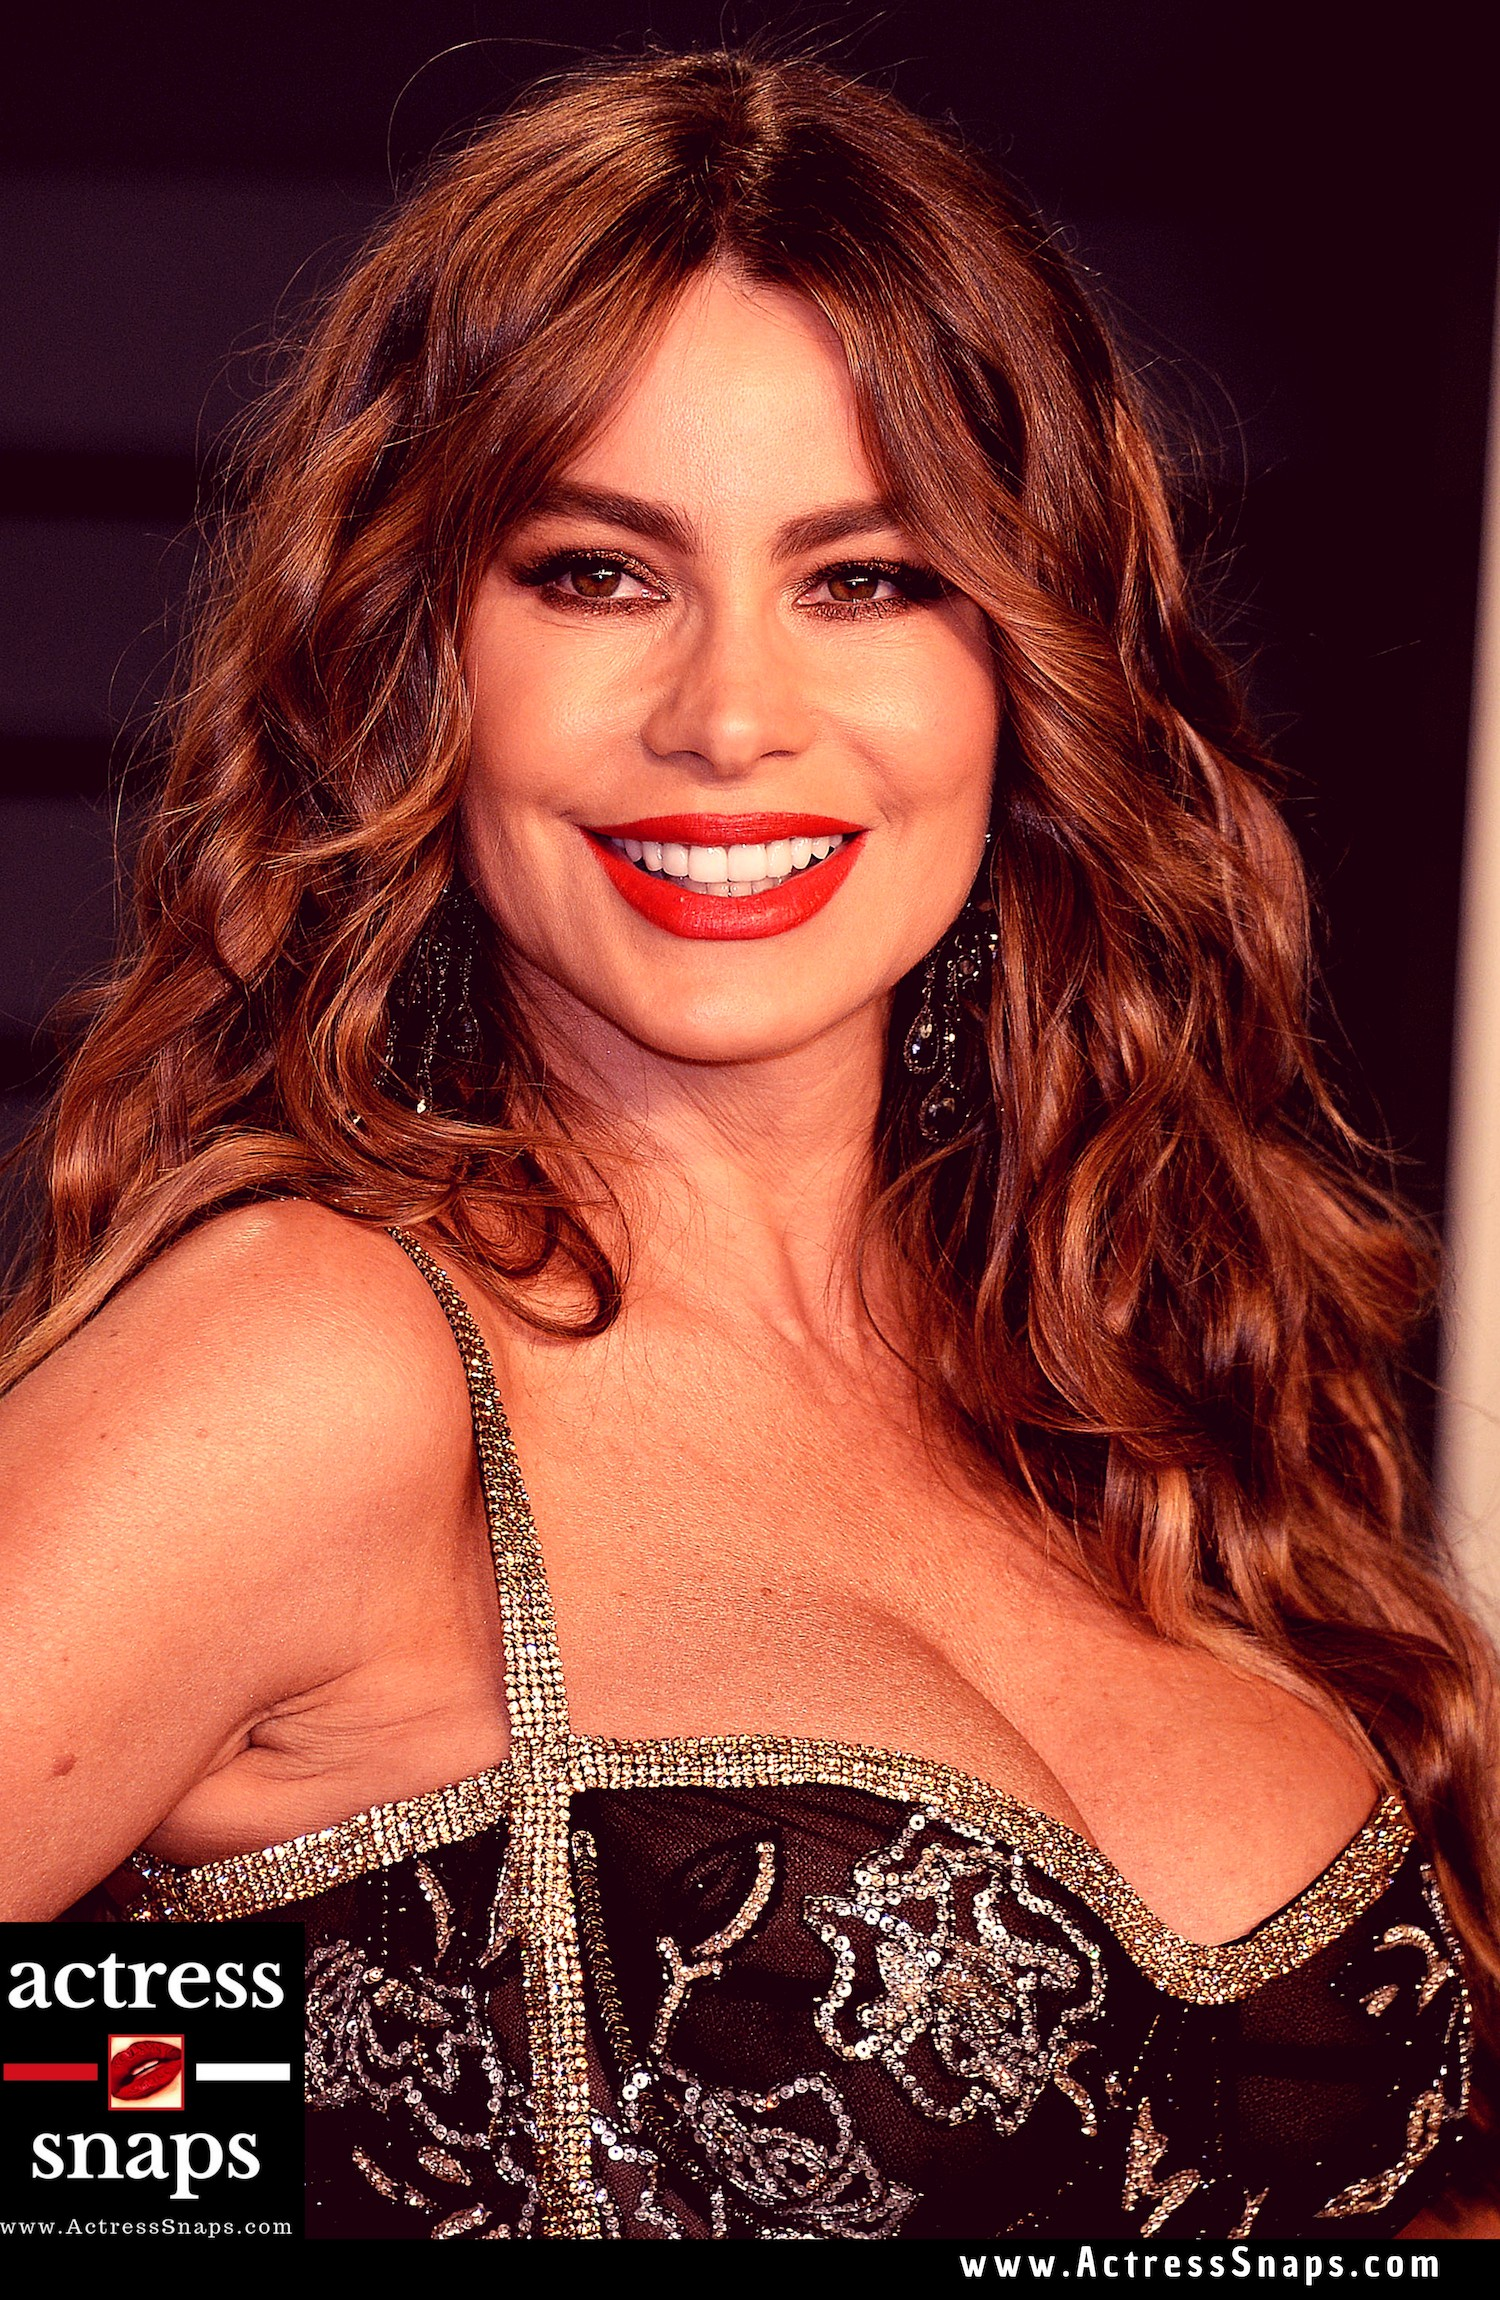 Sofia Vergara - Vanity Fair Oscar Party - Sexy Actress Pictures | Hot Actress Pictures - ActressSnaps.com